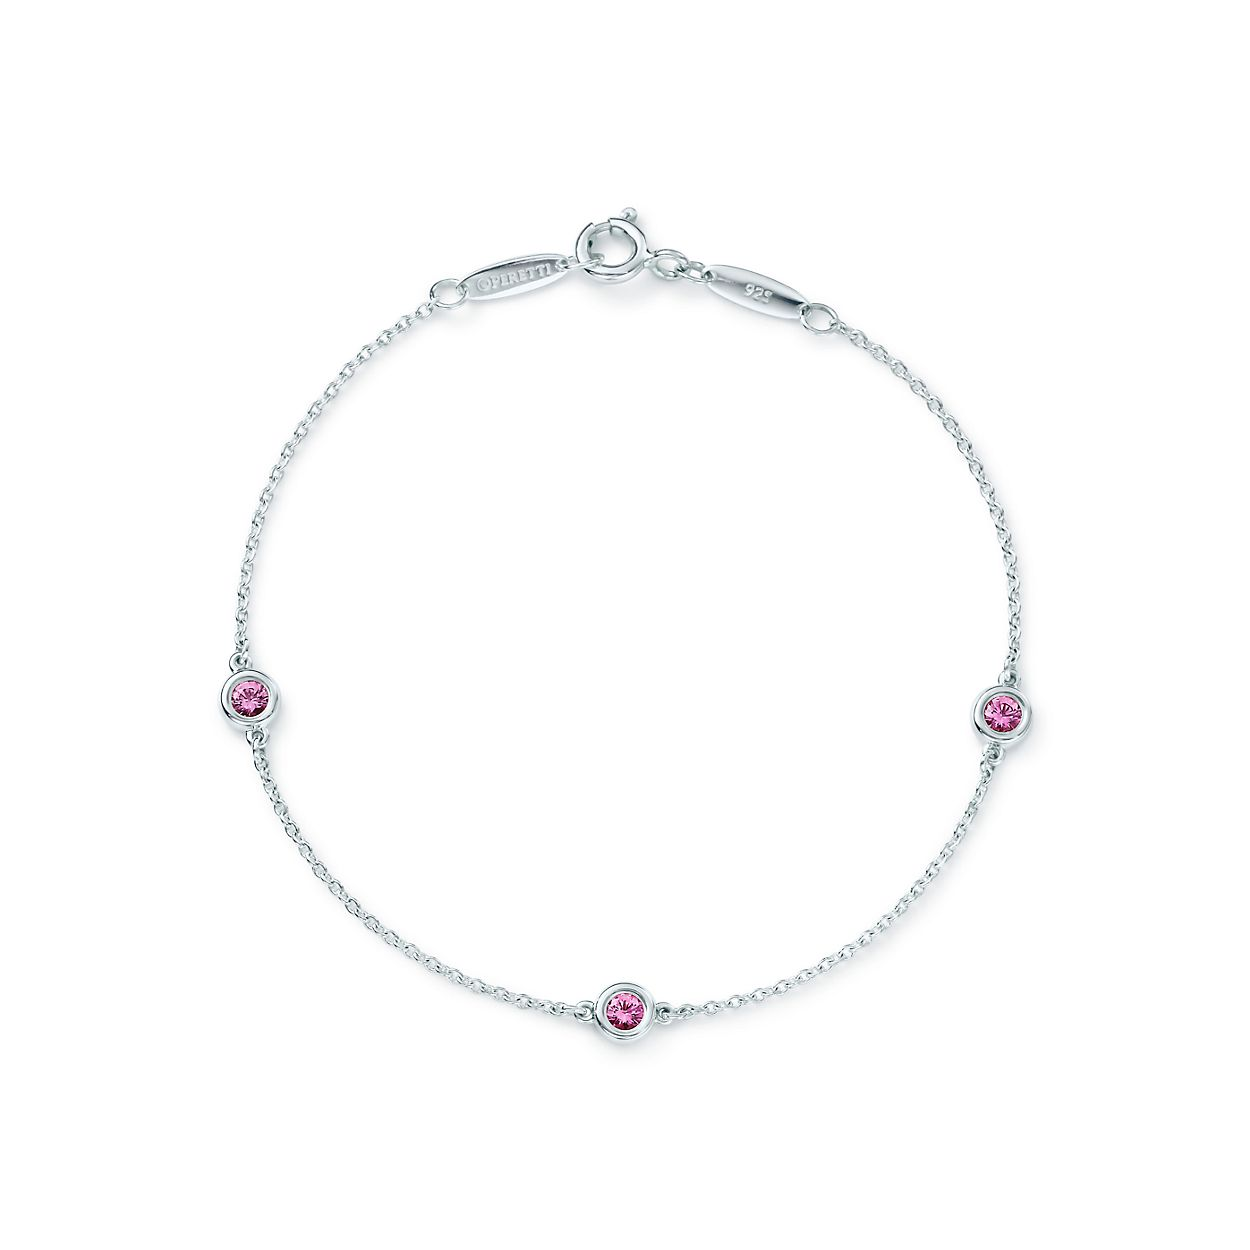 Elsa Peretti Color by the Yard pendant in silver with a pink sapphire Tiffany & Co. oJuM4FKeby